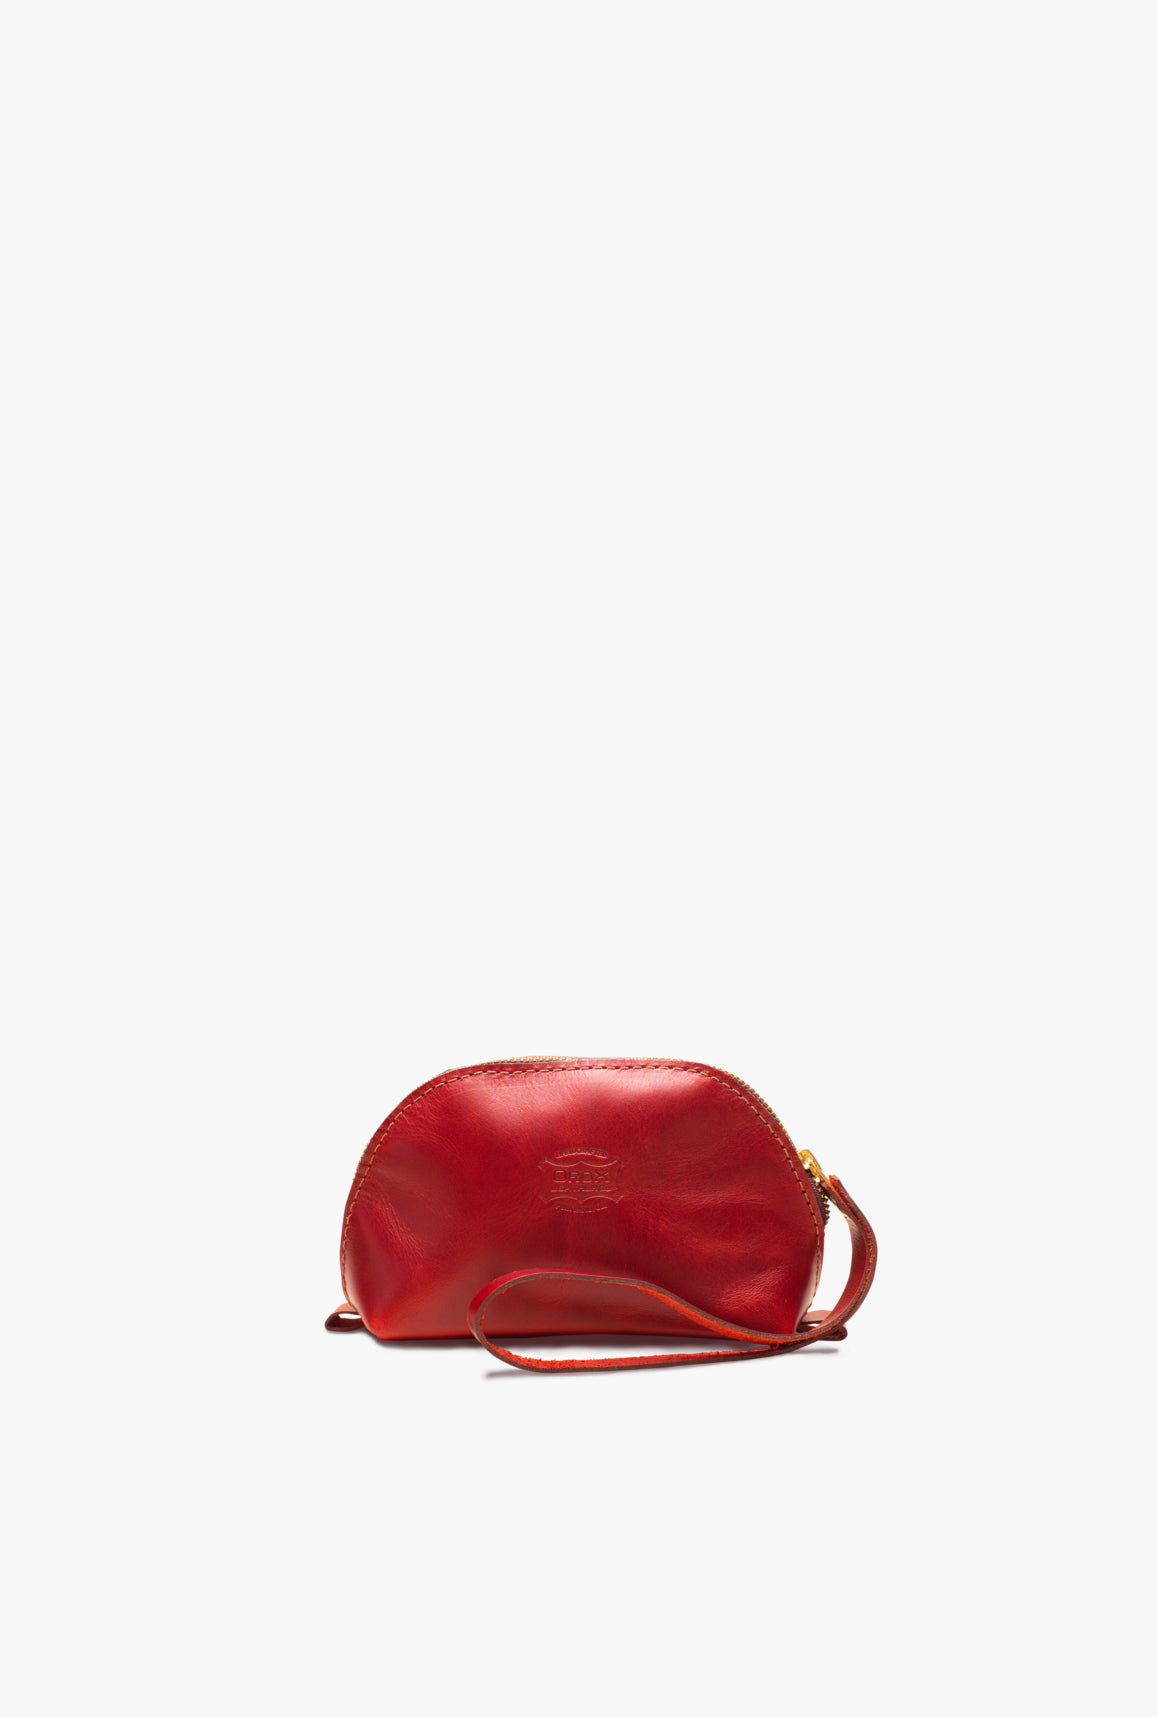 Nara Accessory Pouch Small - Red